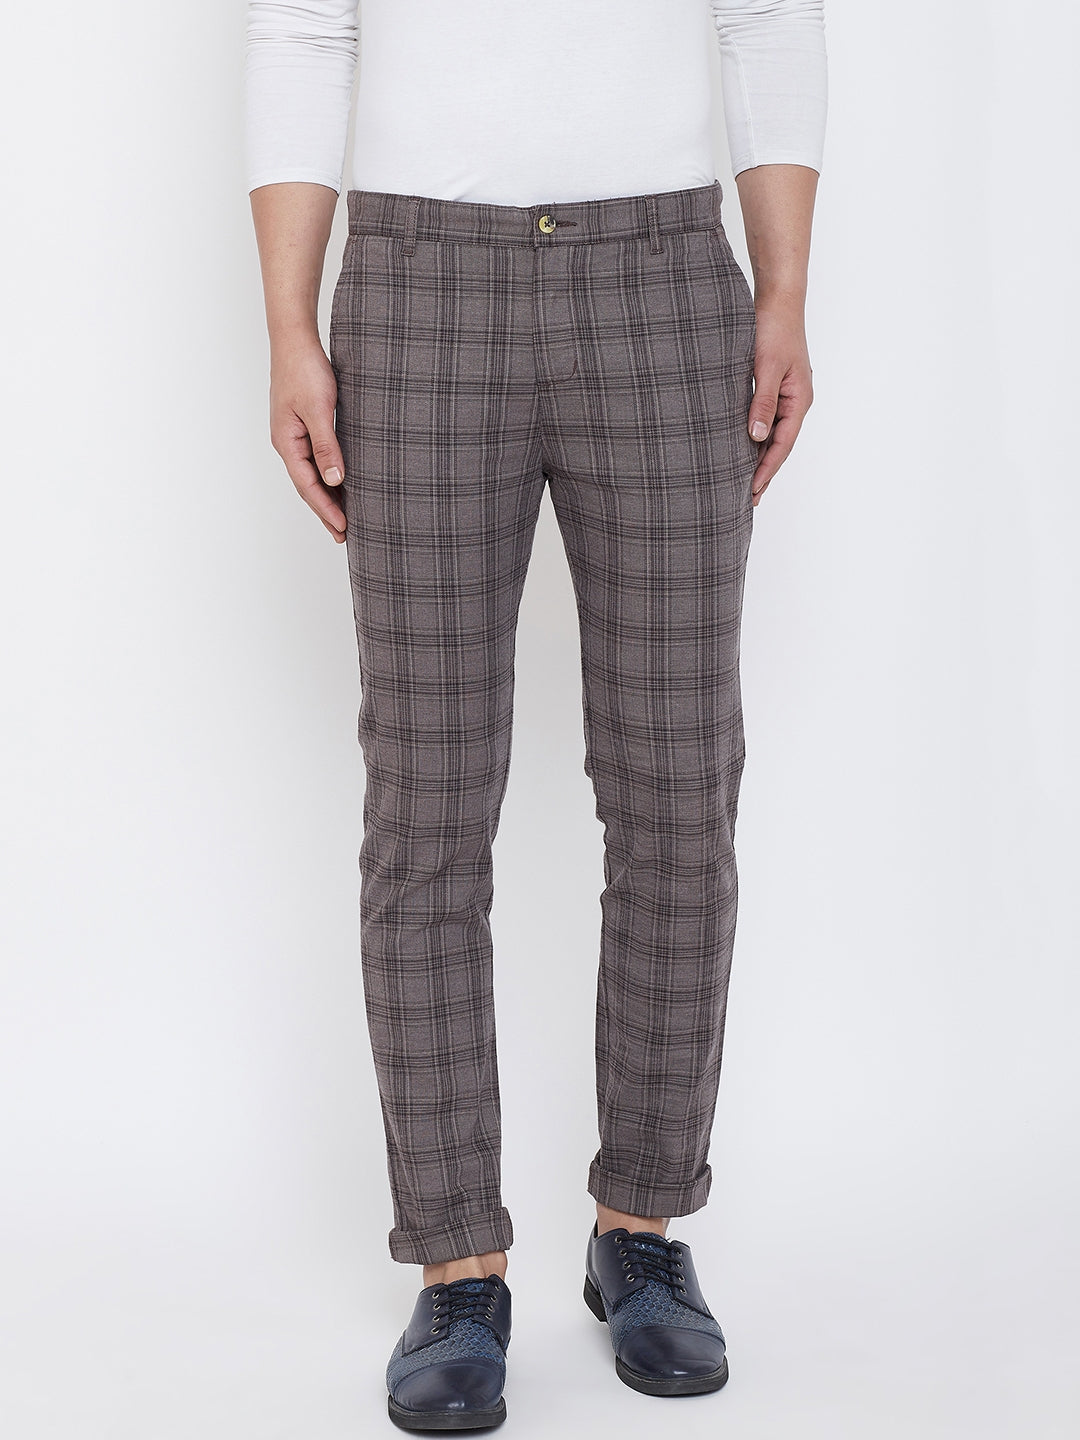 JUMP USA Men Grey Check Slim Fit Cotton Casual Trousers